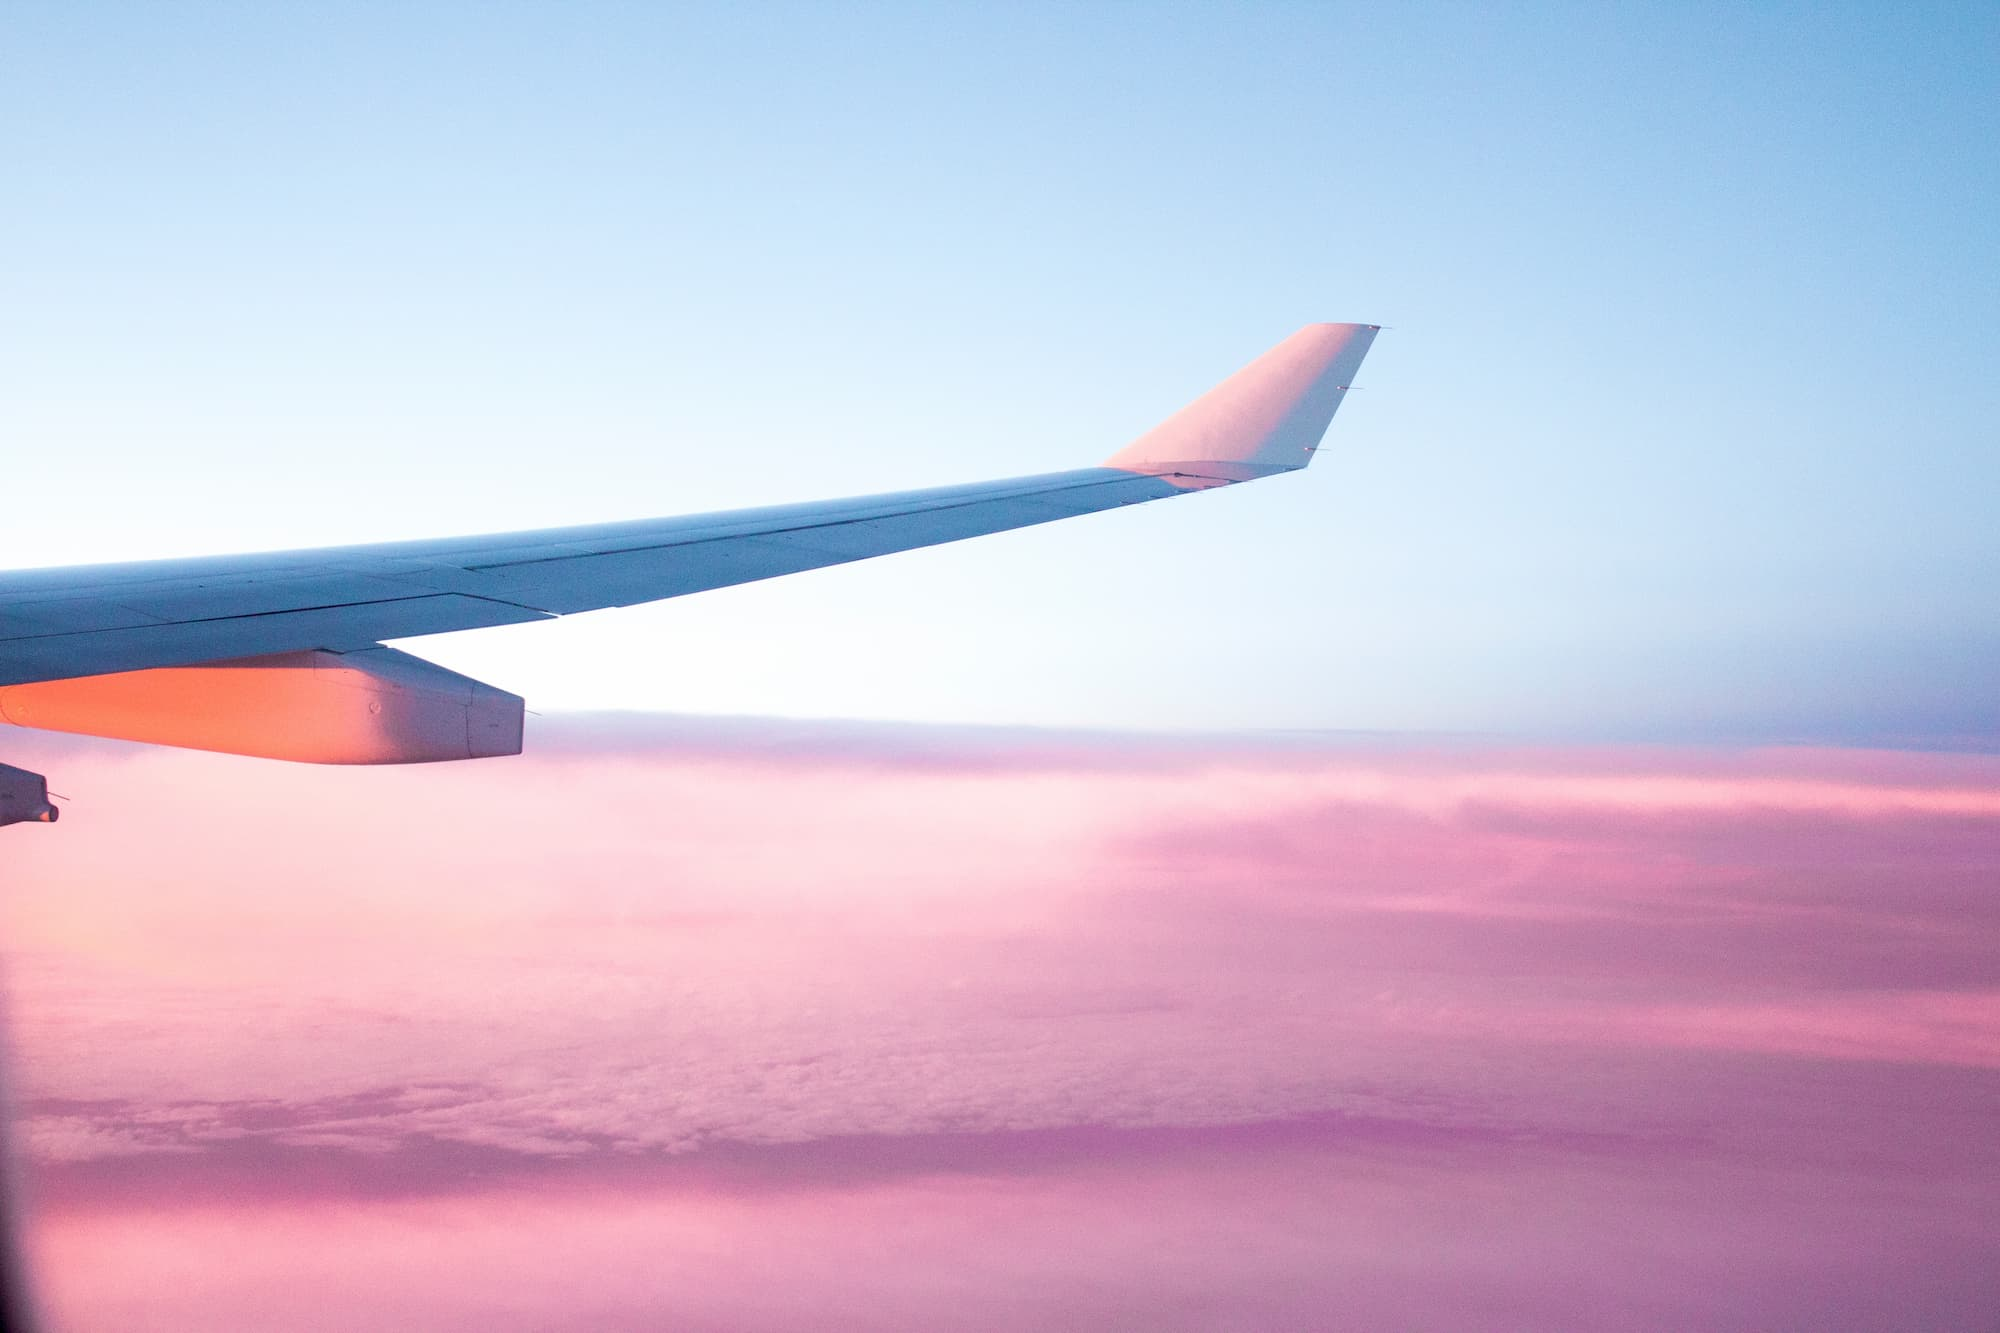 aircraft wing with purpel sky in the background